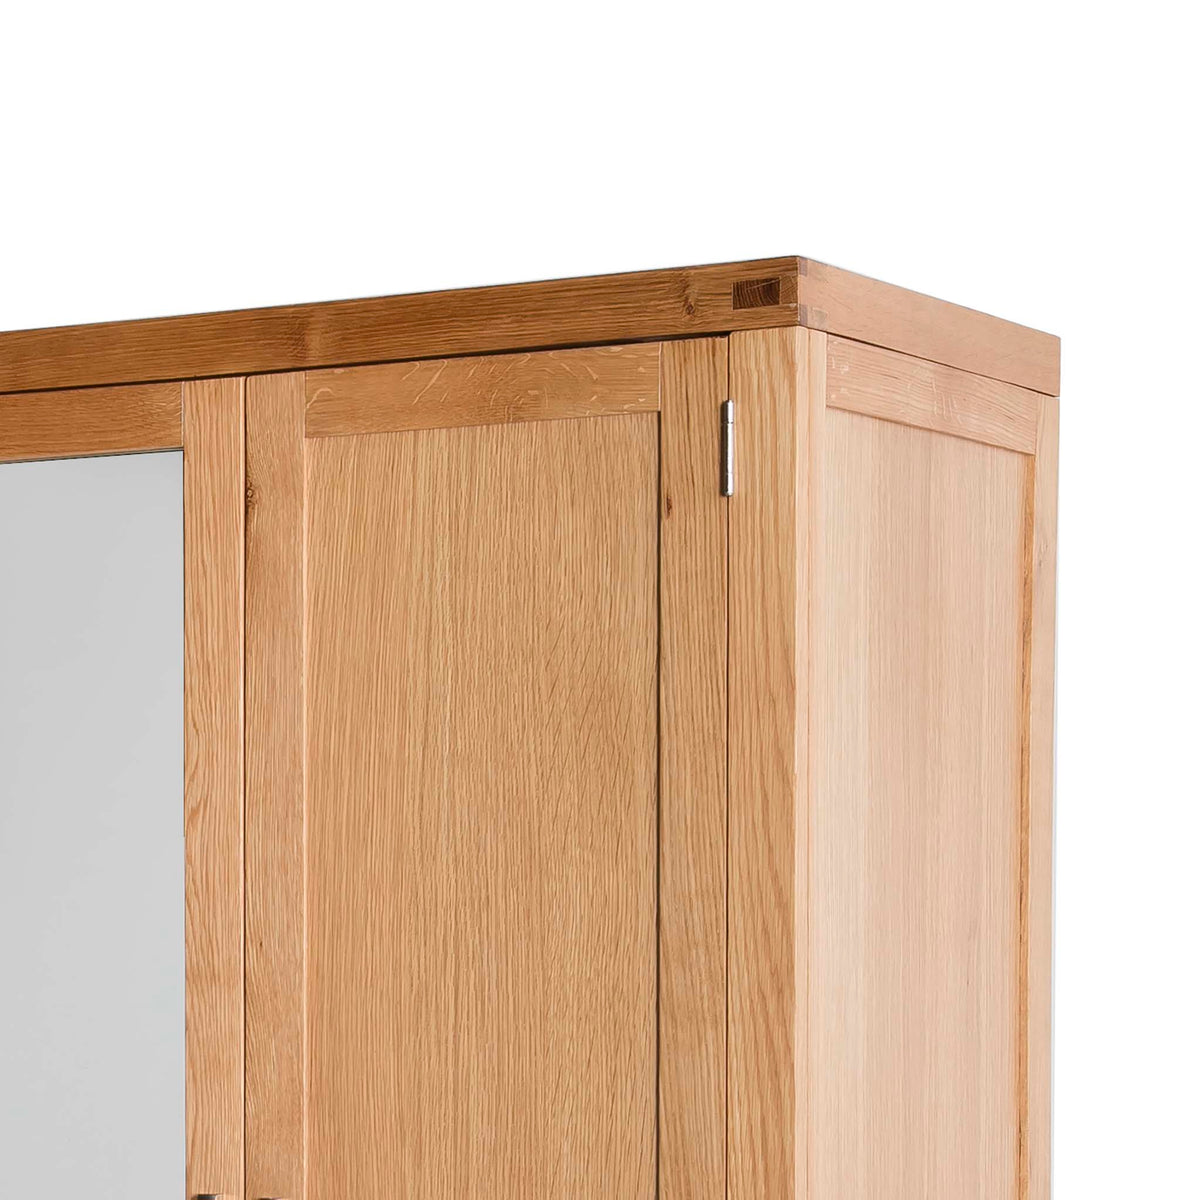 Abbey Light Oak 3 Door Triple Wardrobe with Drawers - Close up of tenon joint on the corner of wardrobe